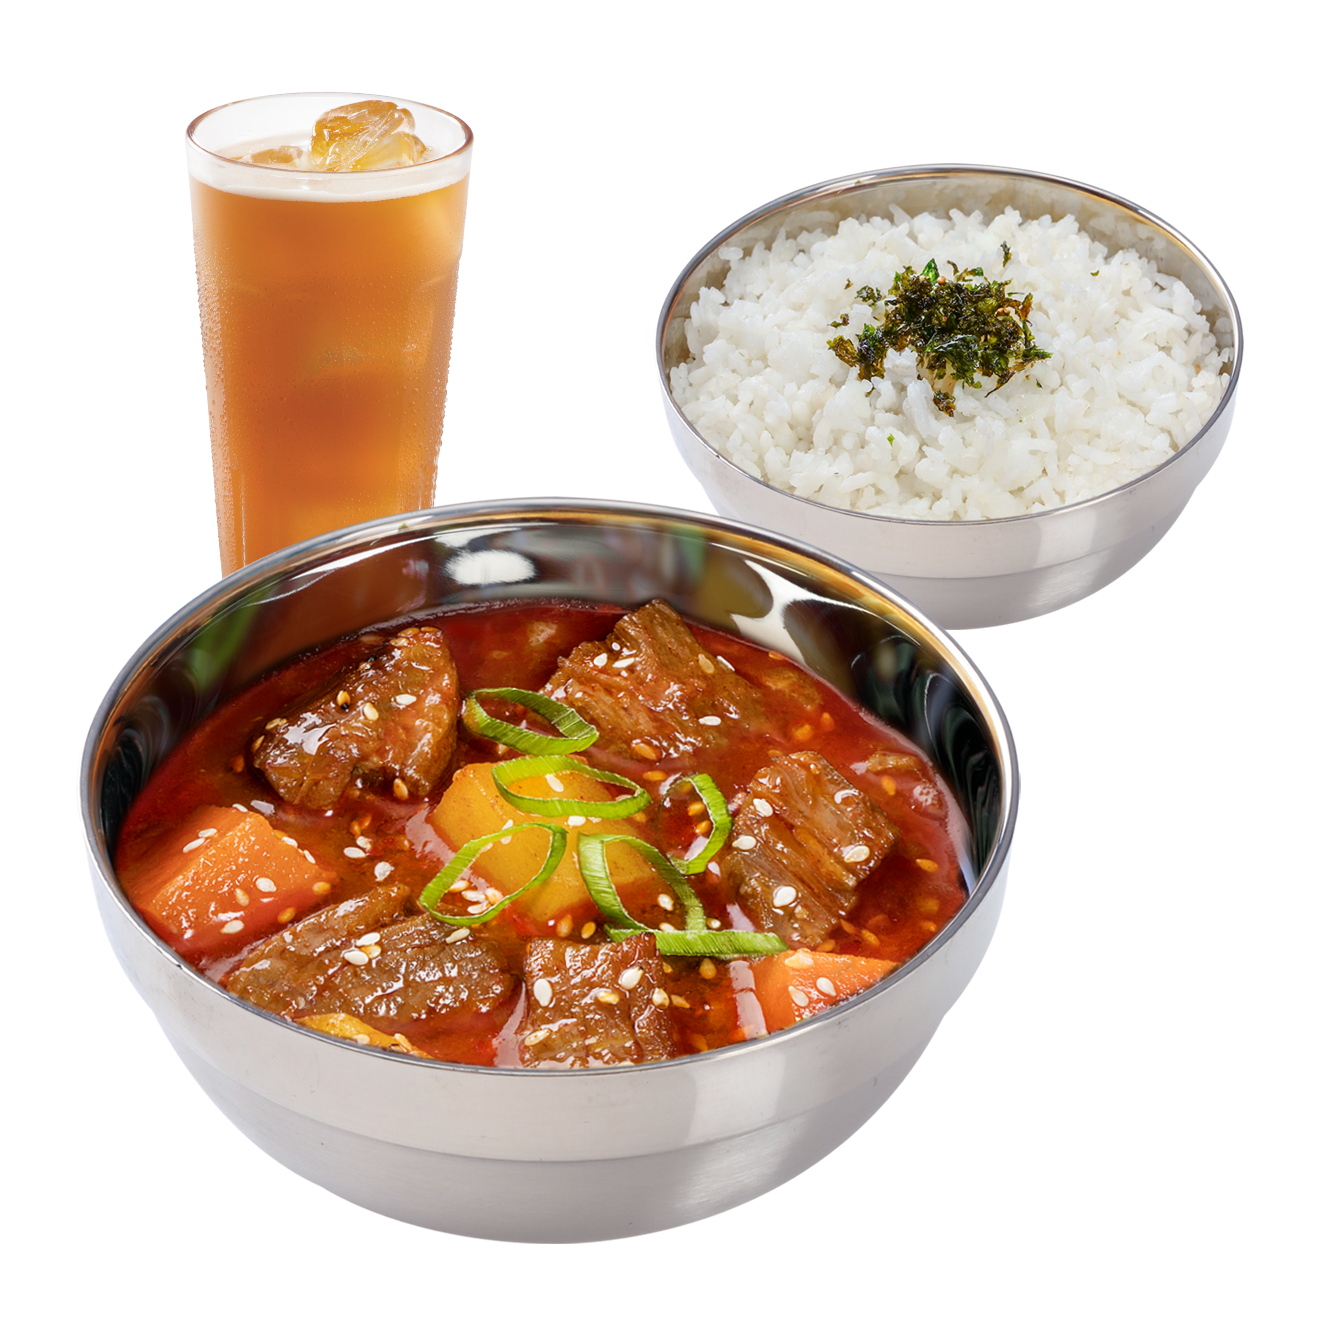 SPICY-BEEF-STEW-MEAL